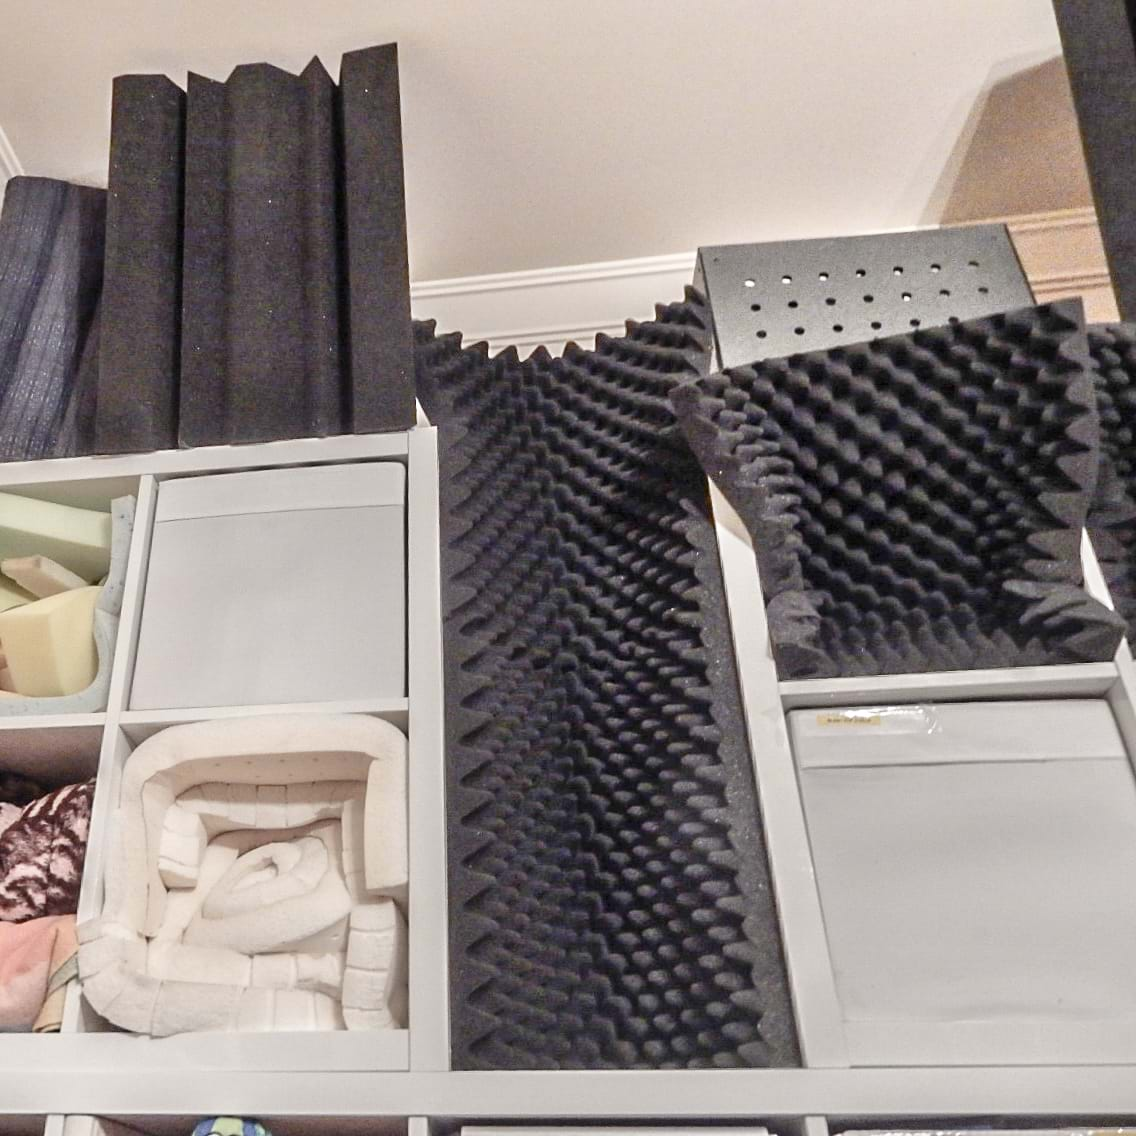 preview of 'What Soundproofing Material Works Best? ' Activity